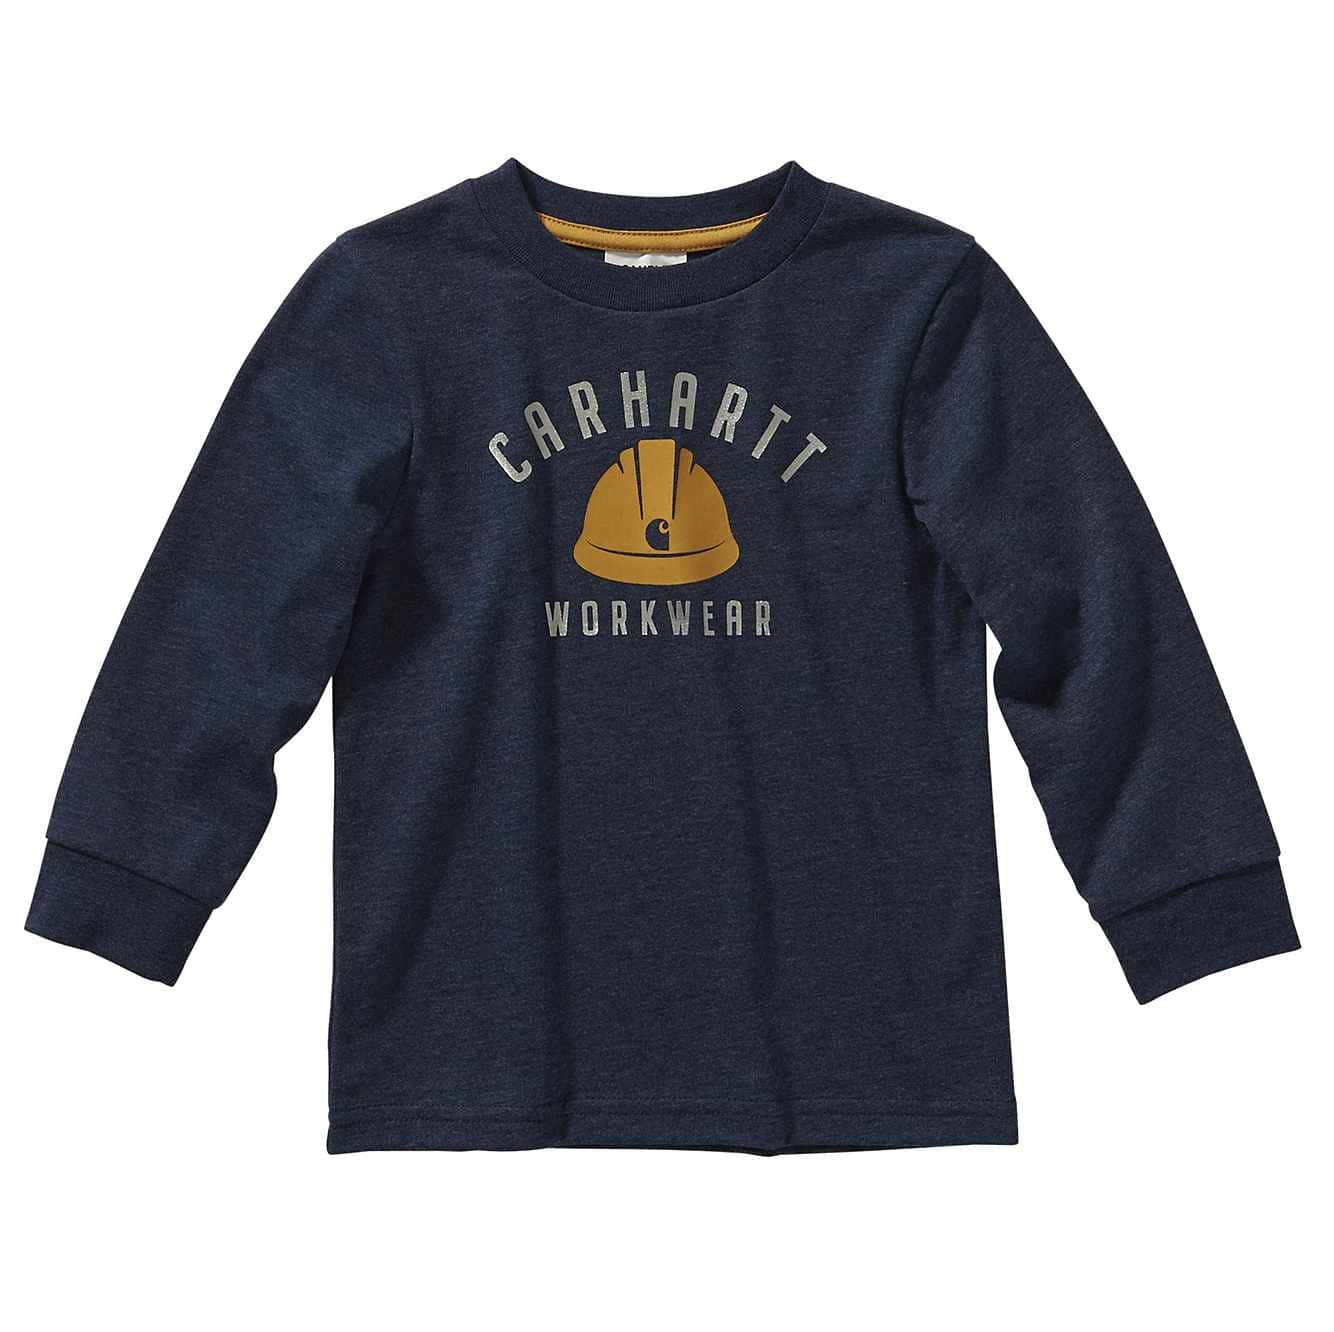 Picture of Long Sleeve Heather Graphic Tee in Navy Blue Heather